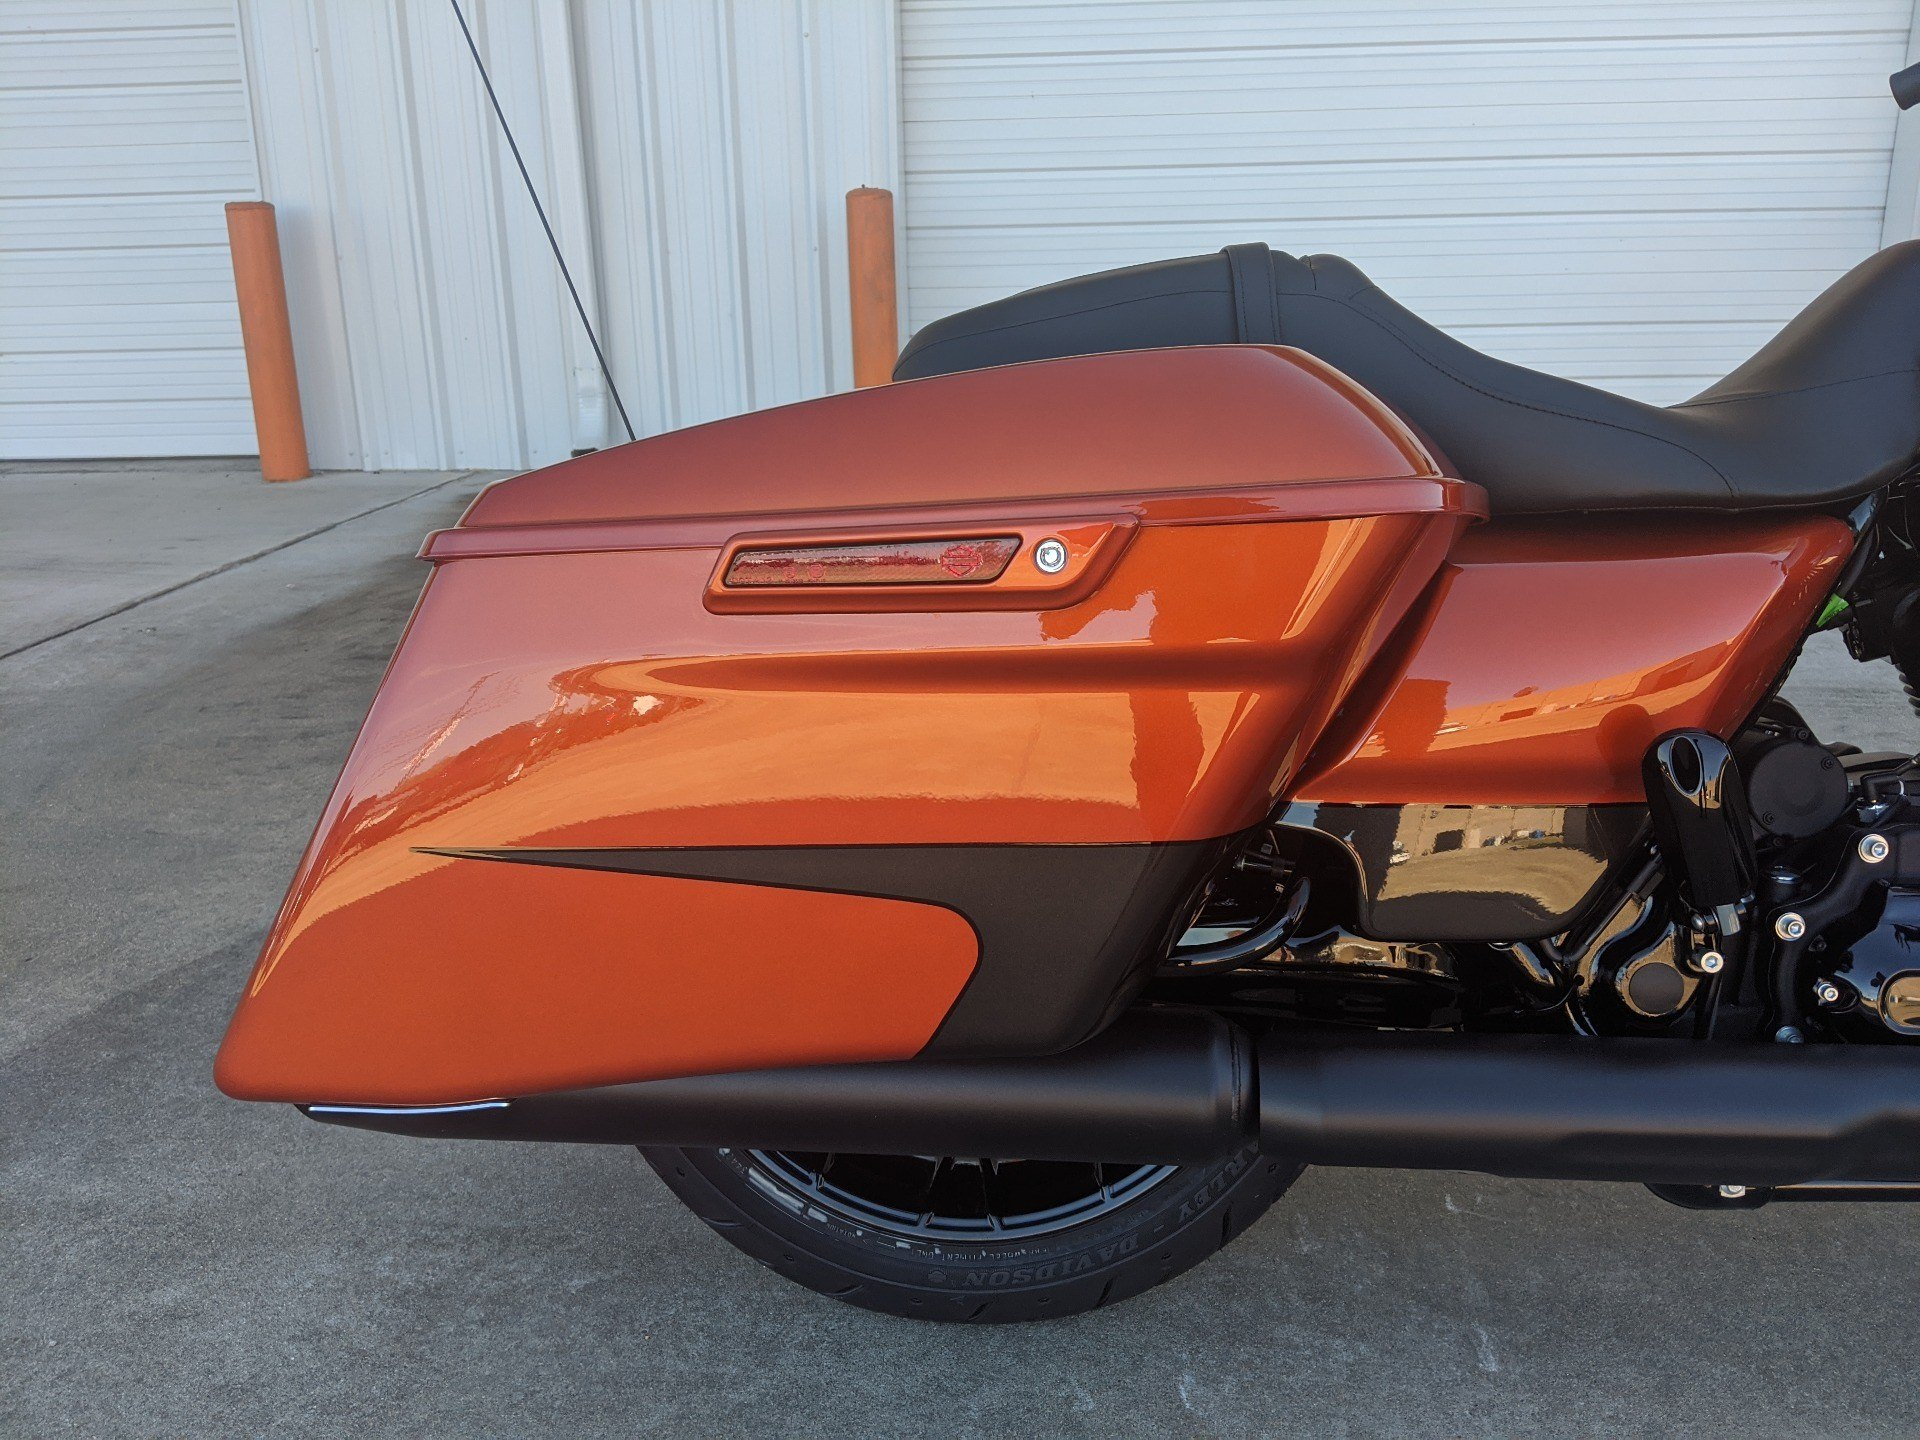 2020 road glide special for sale near me - Photo 5